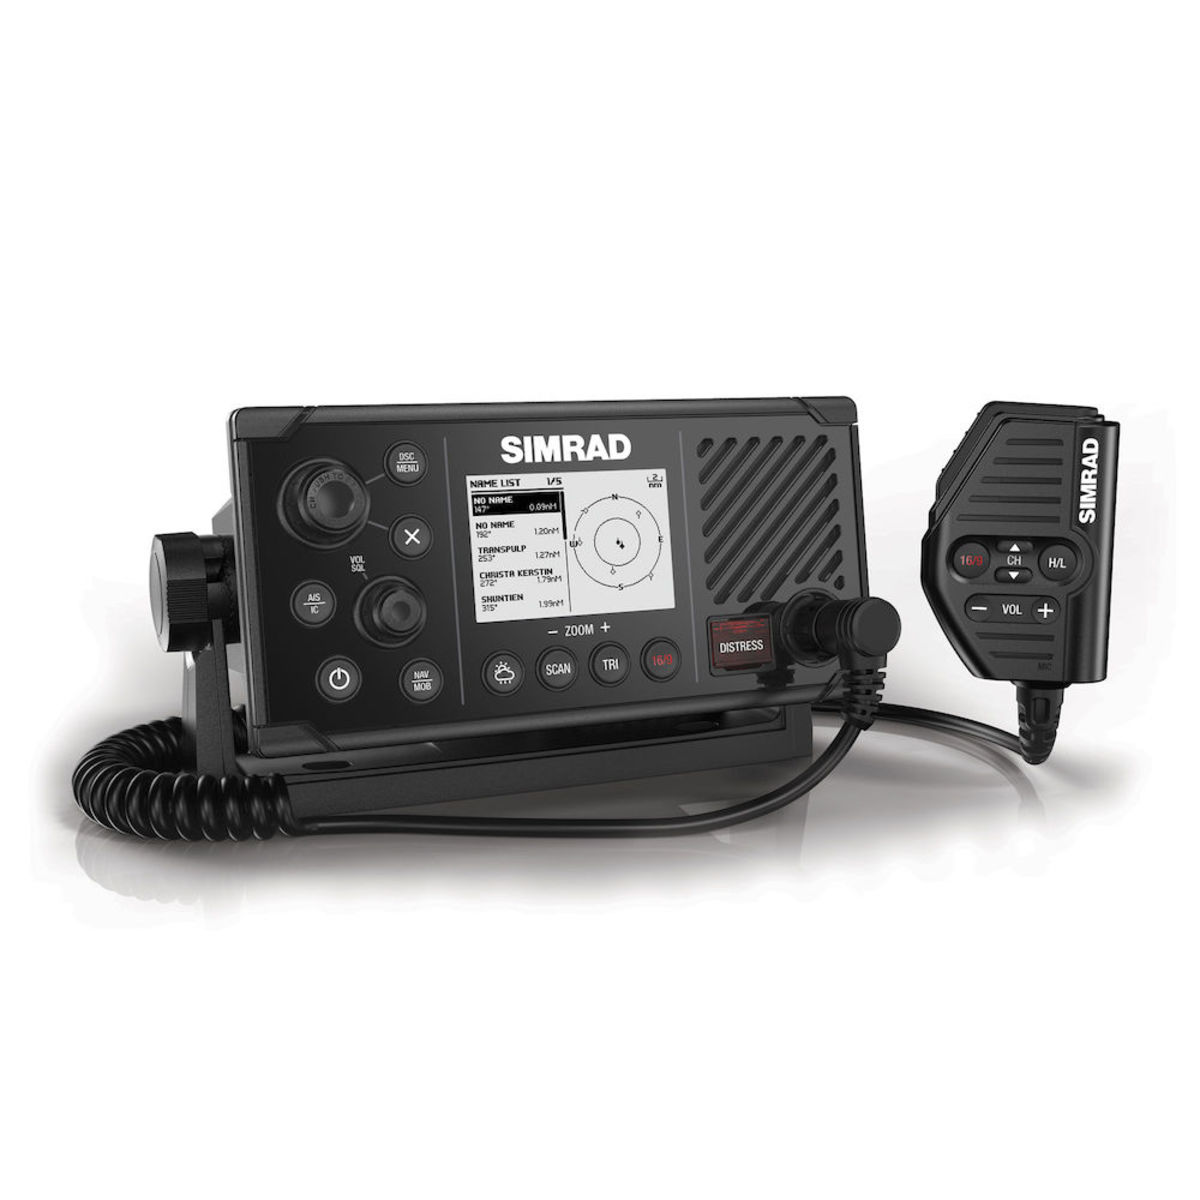 The Simrad RS40-B VHF Radio